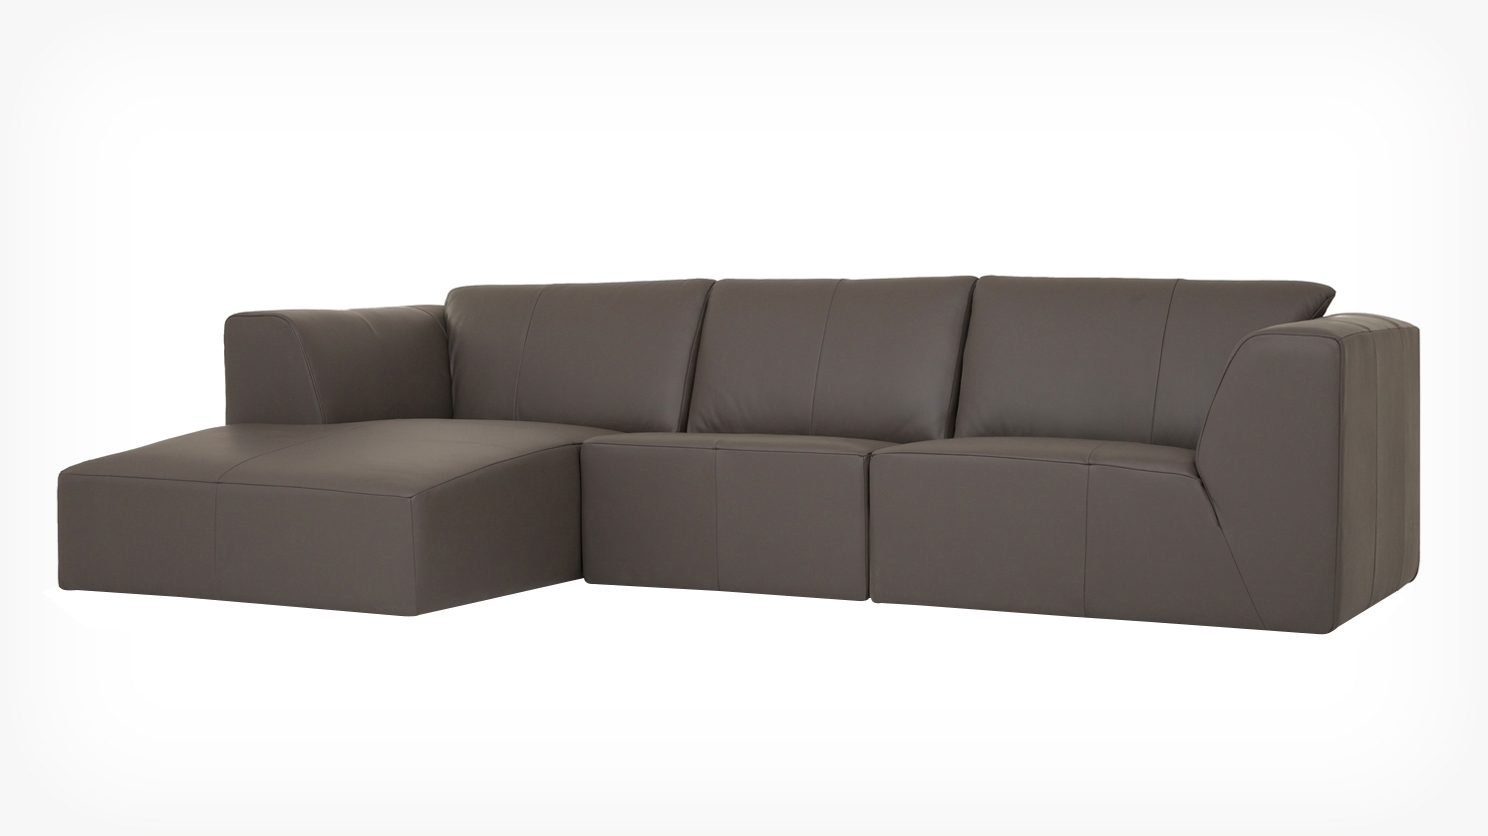 Morten 3 Piece Sectional Sofa With Chaise – Leather (View 4 of 20)